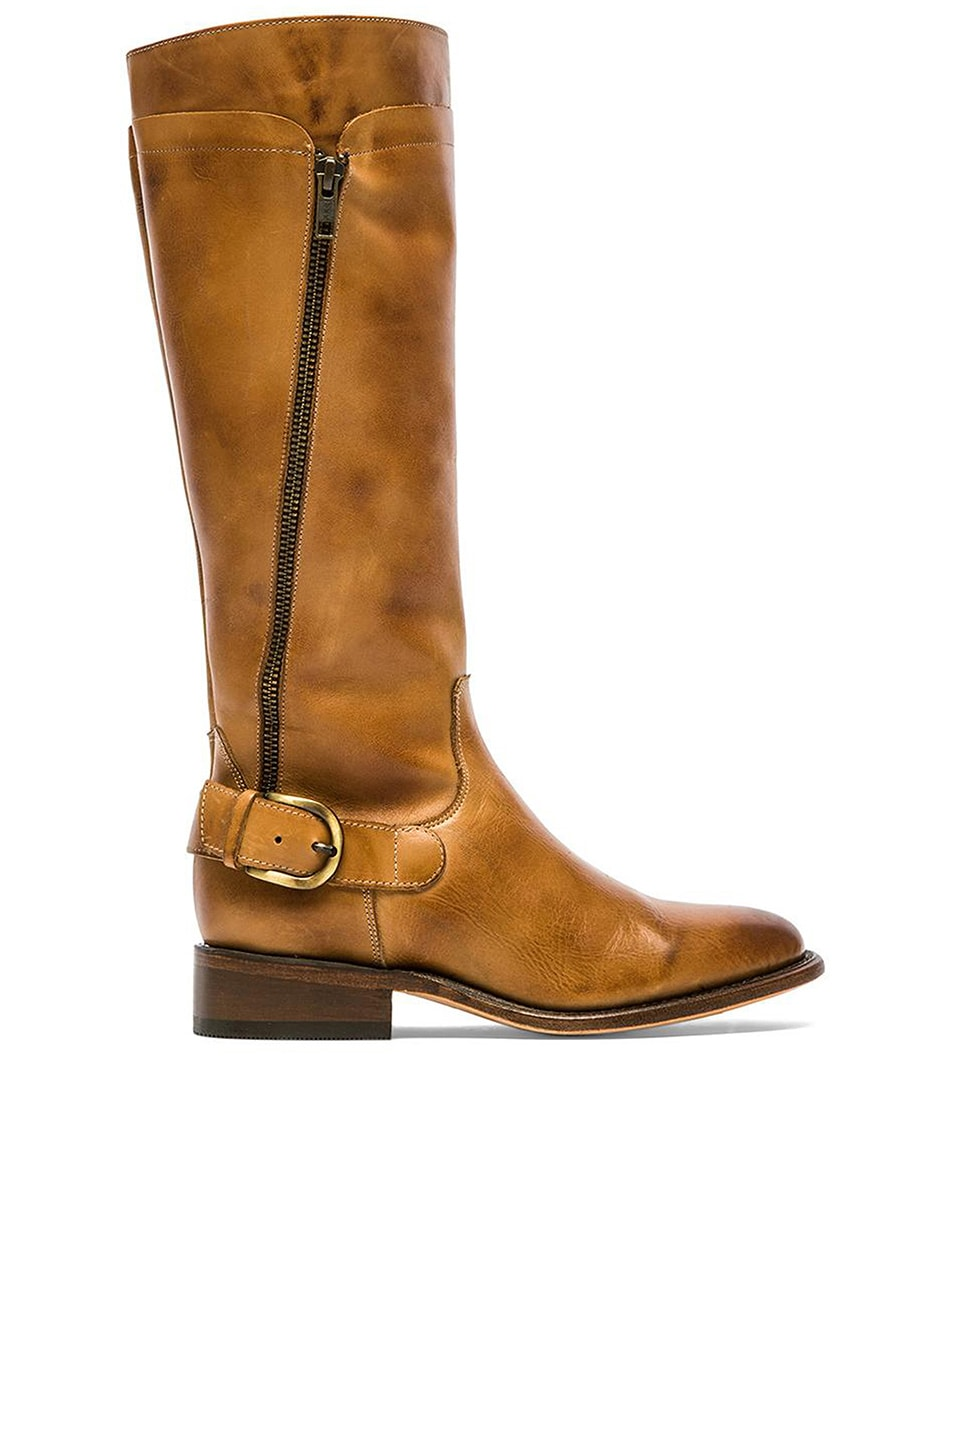 Matisse Tawny Boot in Tan